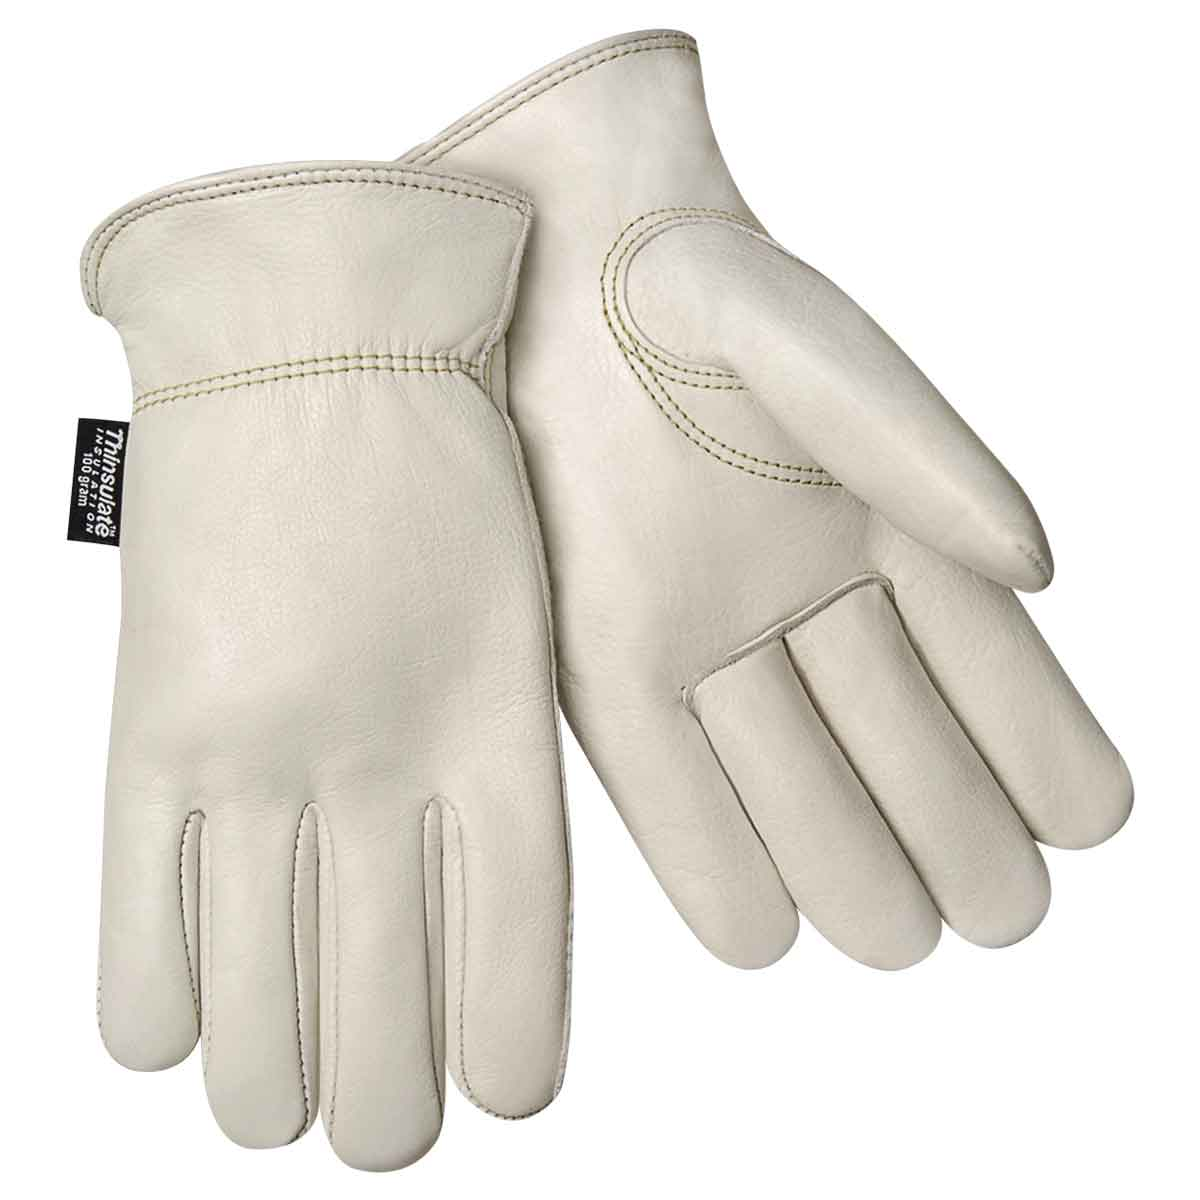 Steiner 0240T Premium Grain Cowhide Winter Gloves, Thinsulate Insulated Lining, X-Large by Steiner